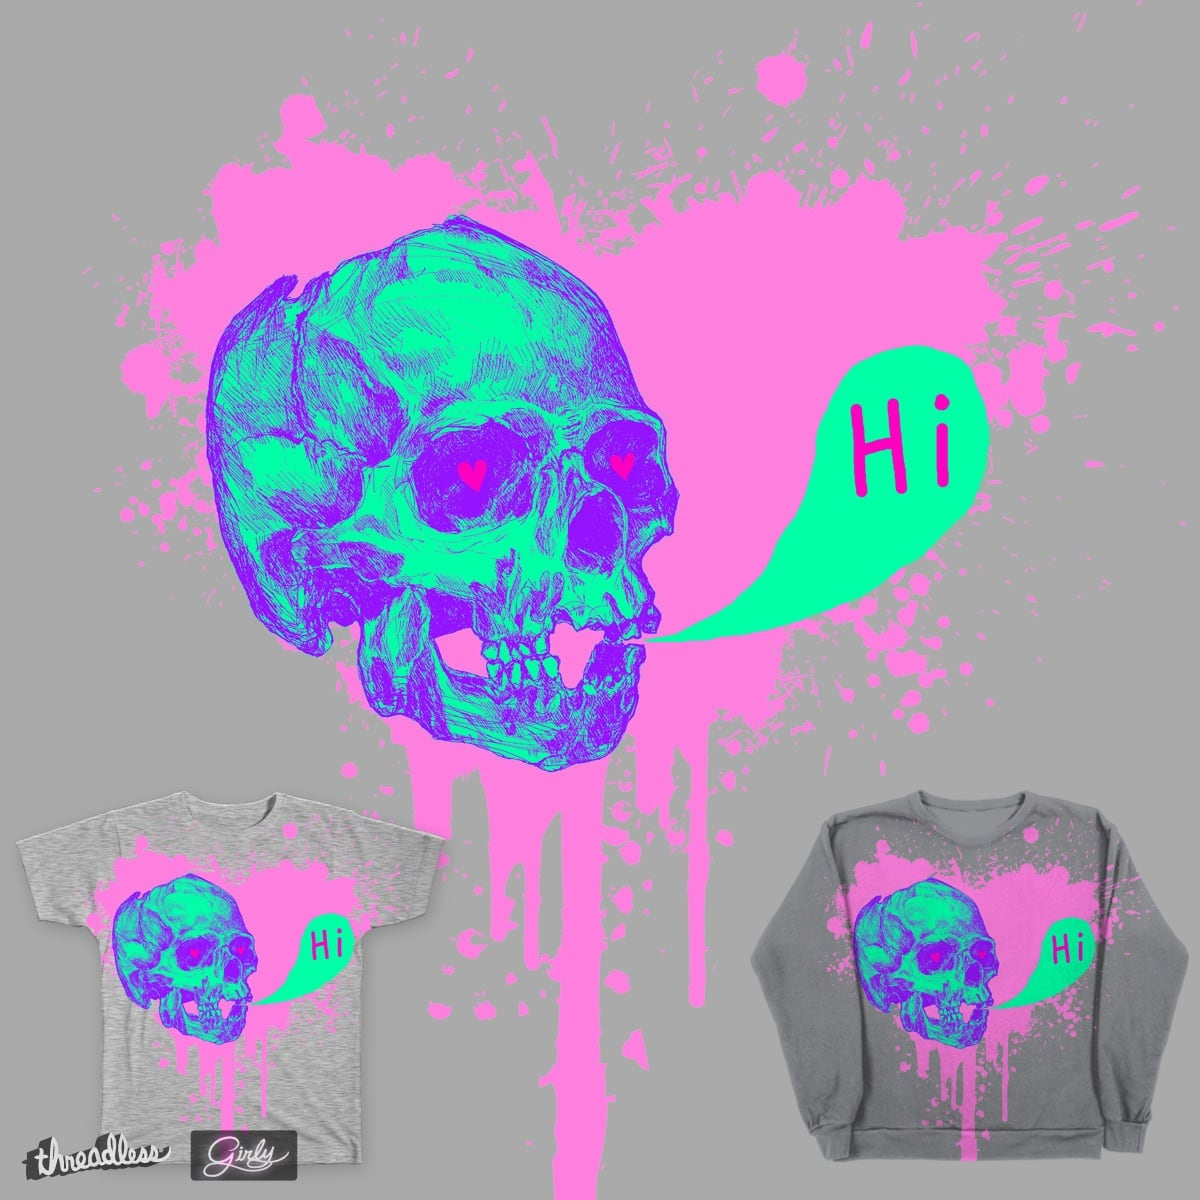 Girly deadly love! by pwetard on Threadless